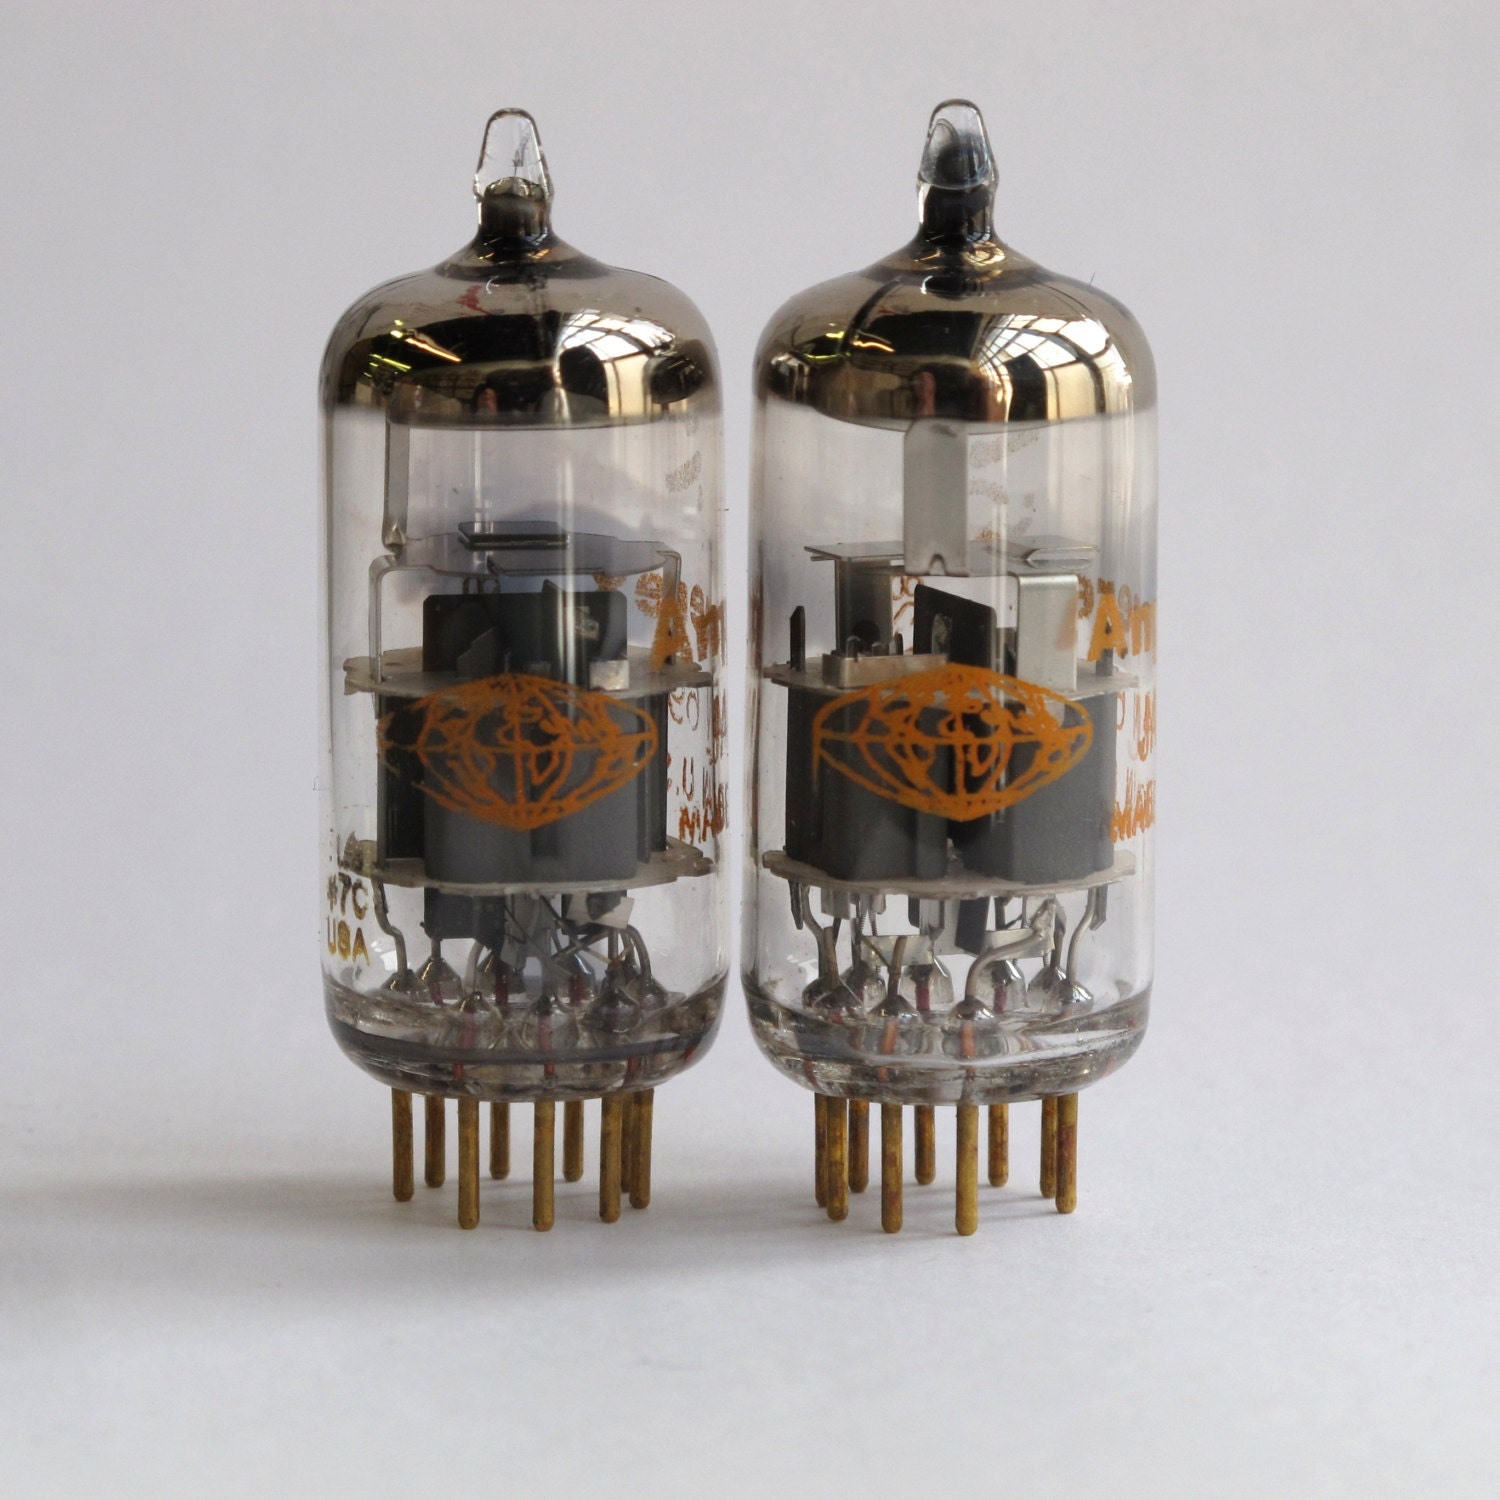 dating amperex tubes 7316=ecc186=12au7 amperex holland short-plate 1959-1965 i will never ever be able to go back to regular tubes after hearing these.